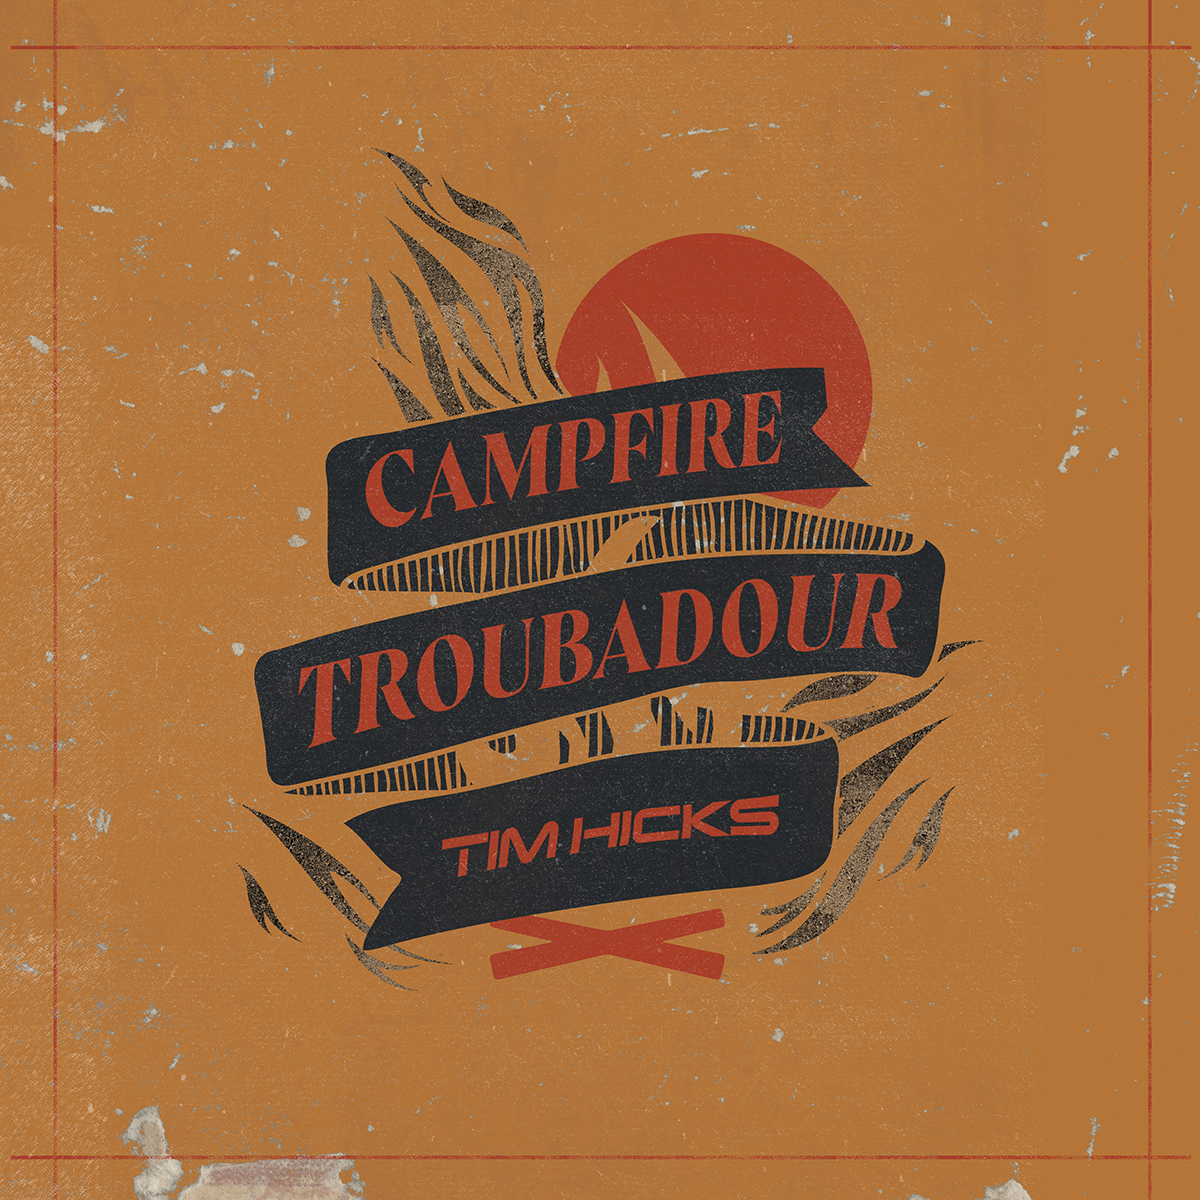 Tim Hicks Brings The Smoke With Campfire Troubadour, A New Seven Song Collection